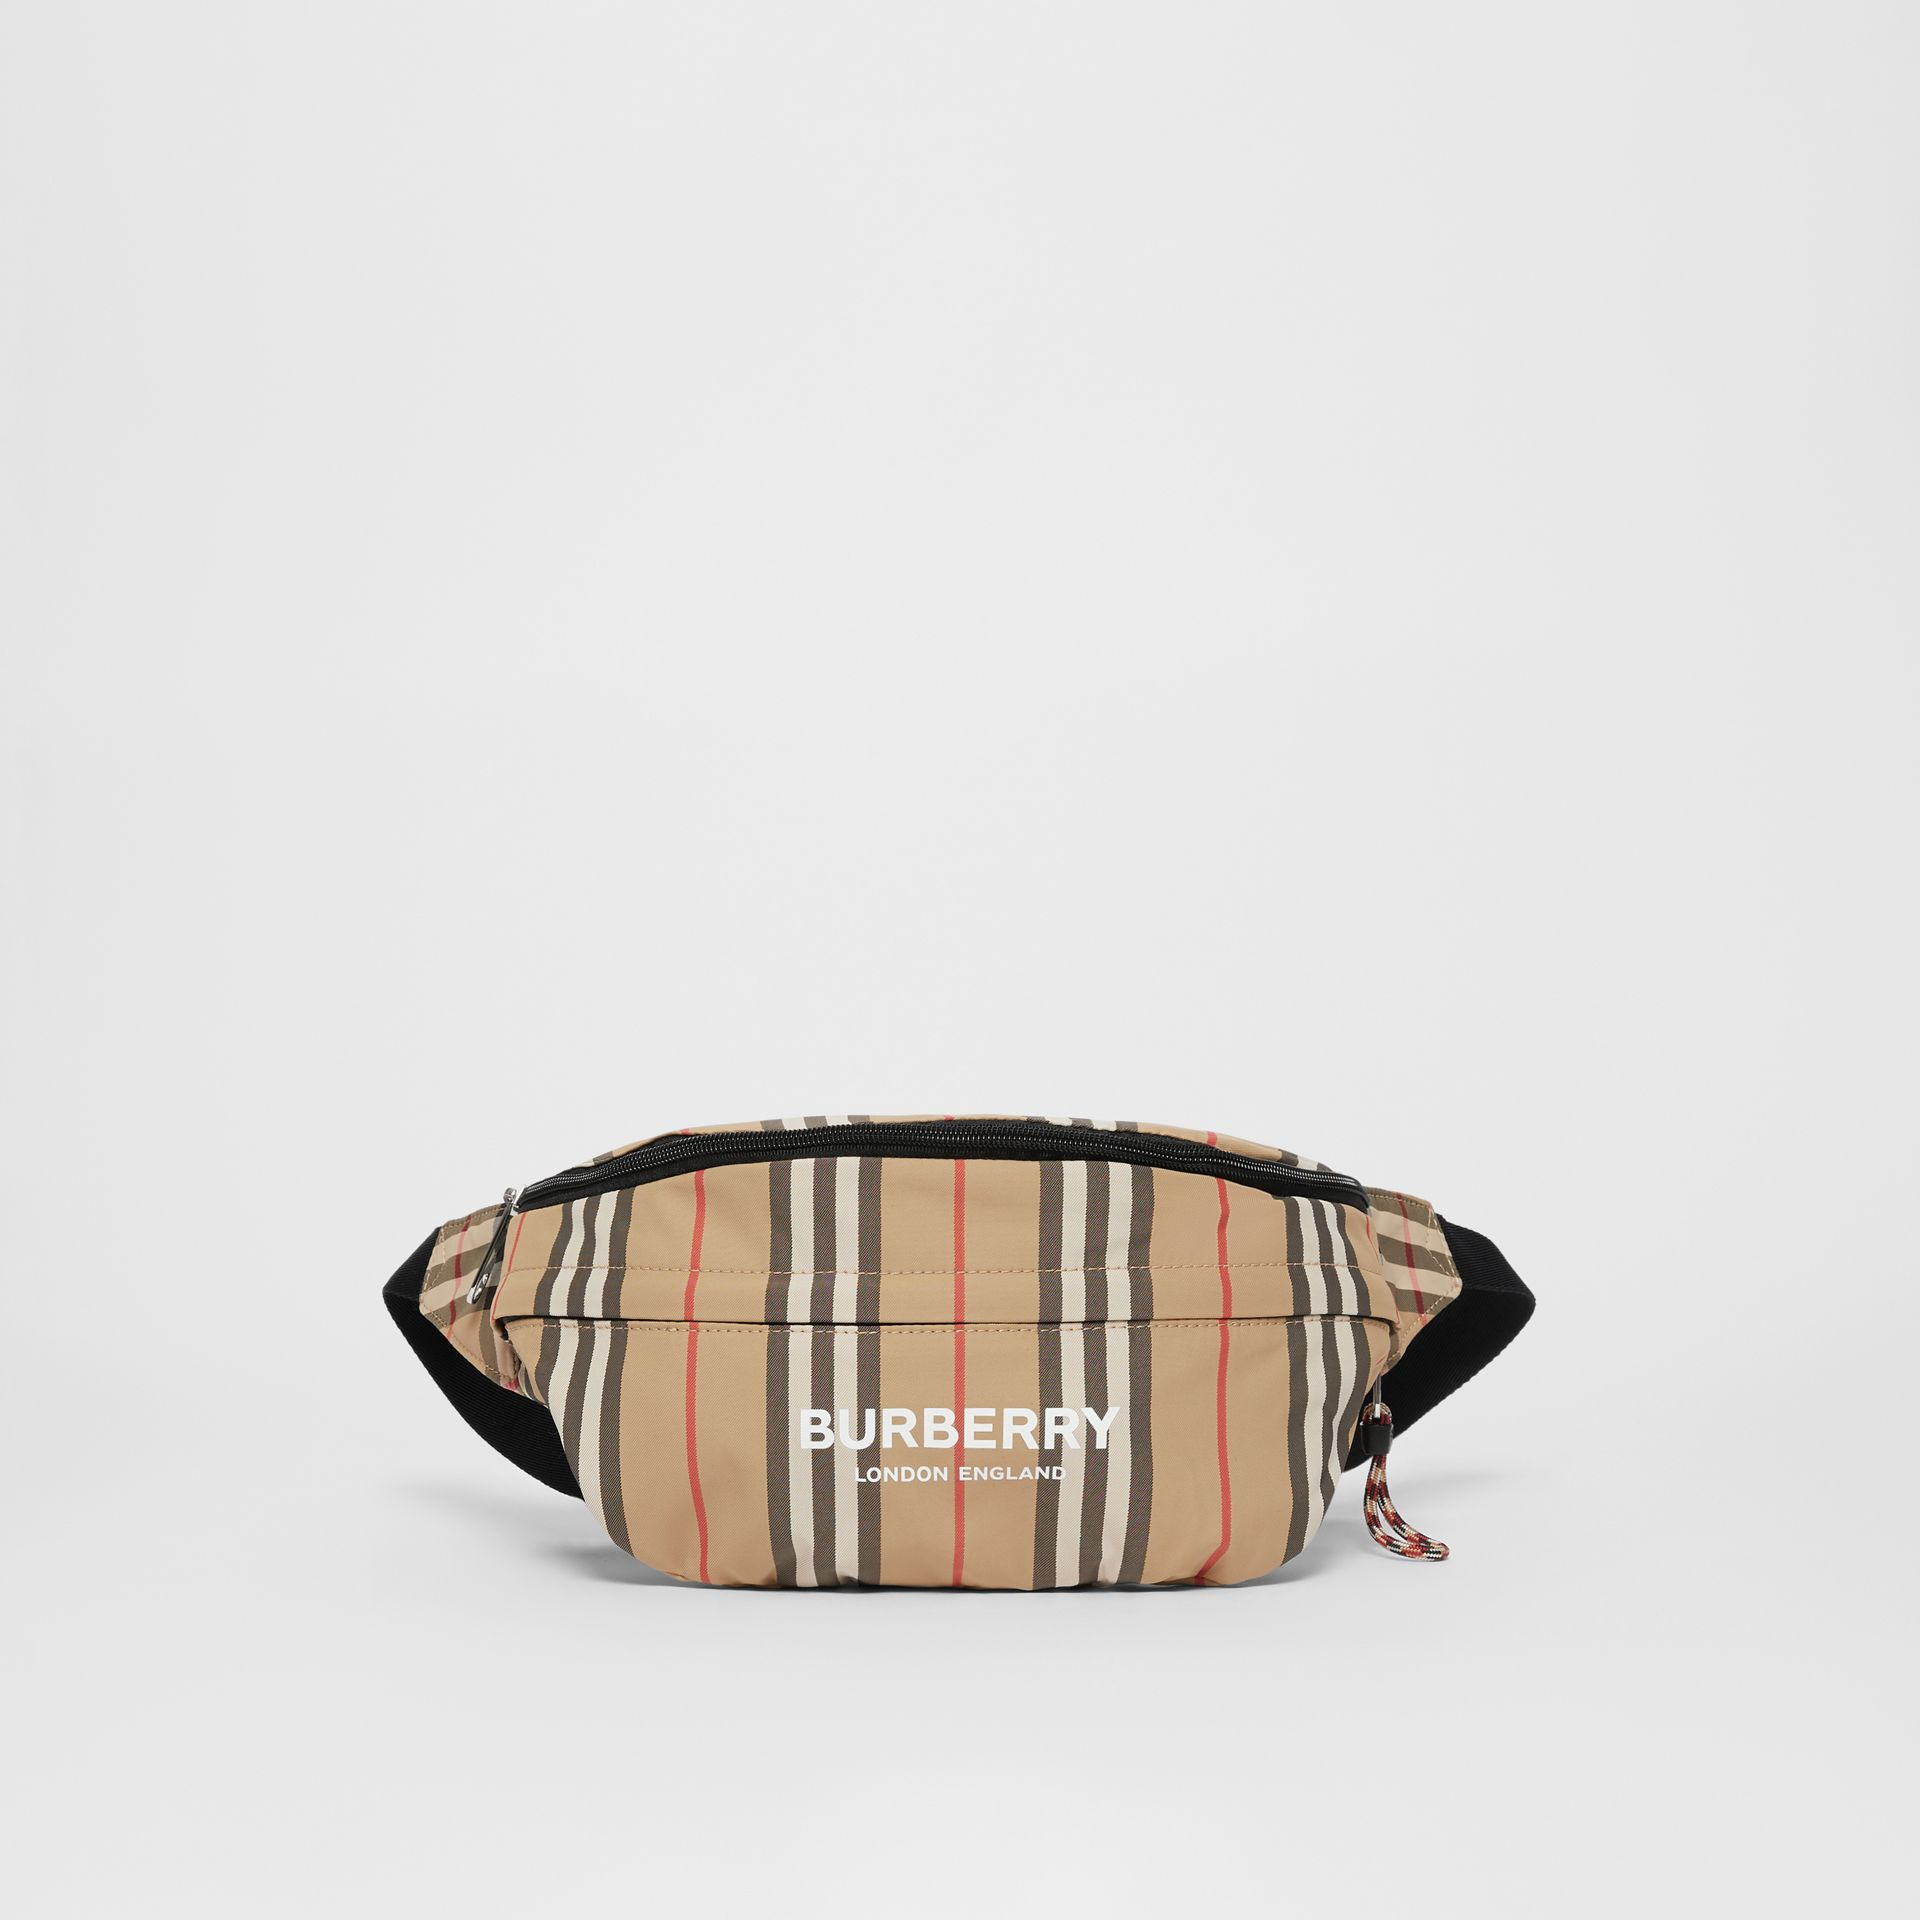 Sac banane convertible à rayures iconiques et Vintage Check (Beige D'archive) - Enfant | Burberry - photo de la galerie 6